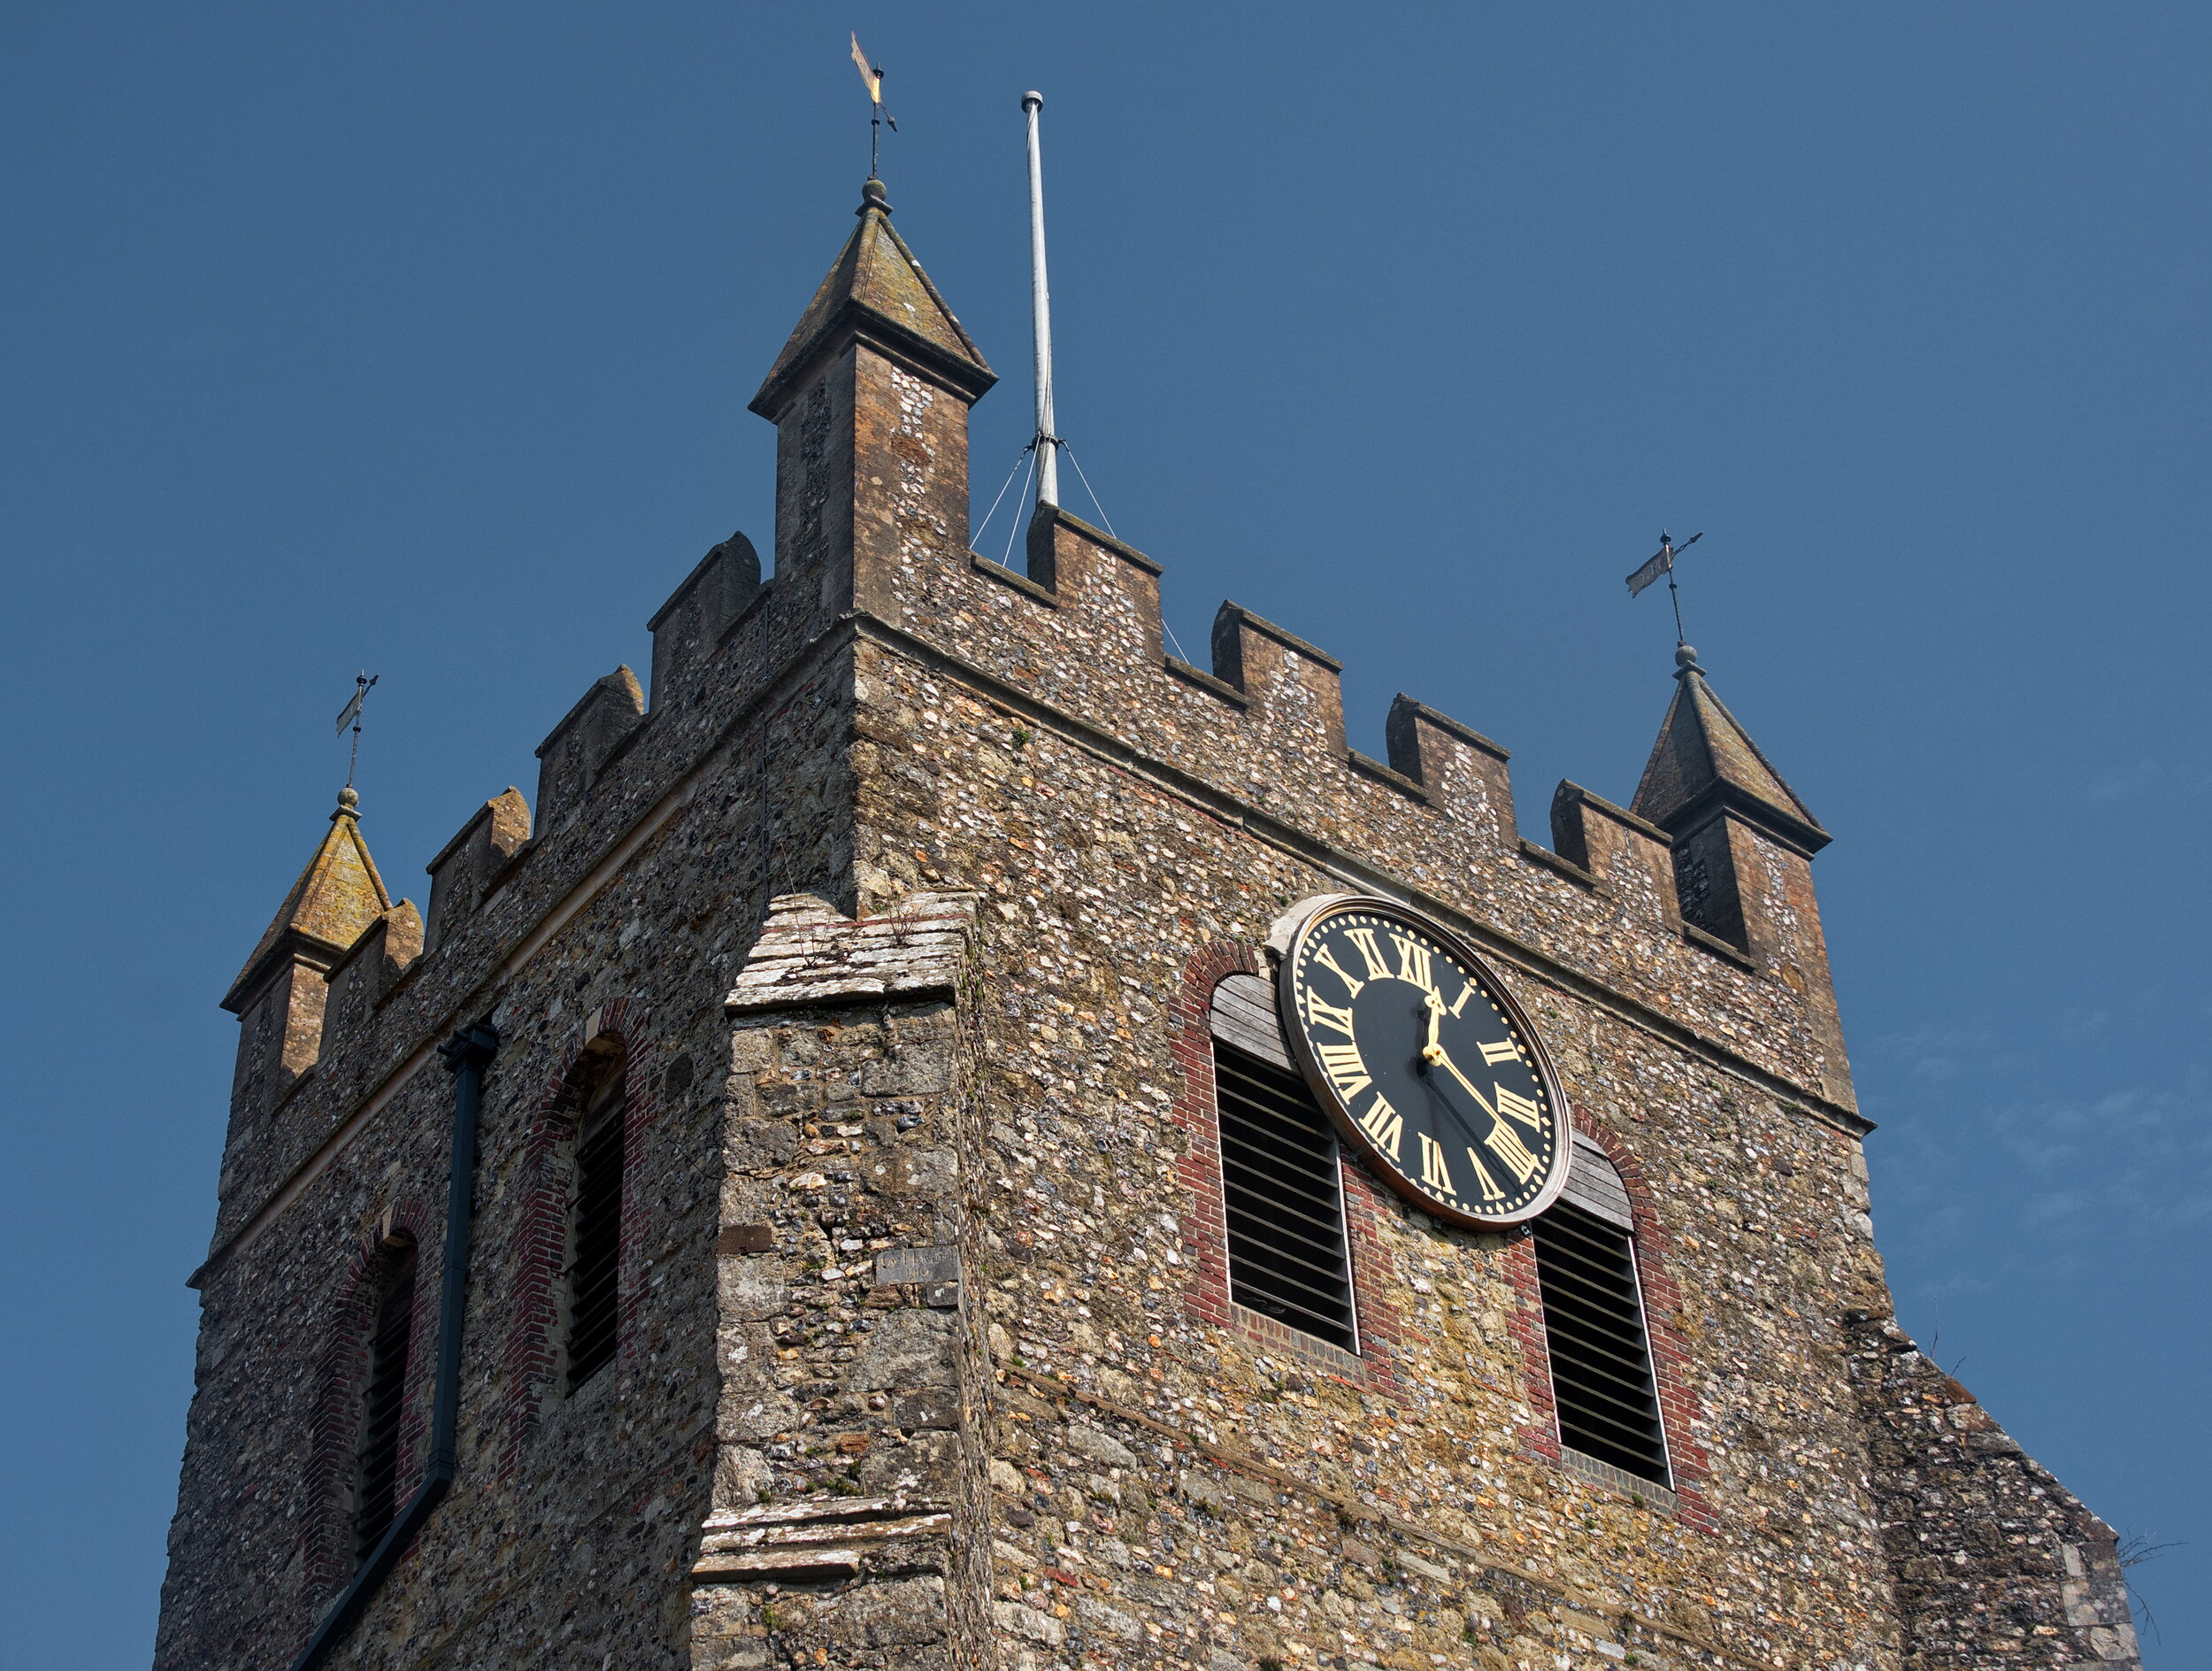 tower-of-st-gregory-and-st-martins-church-wye_48730875362_o.jpg